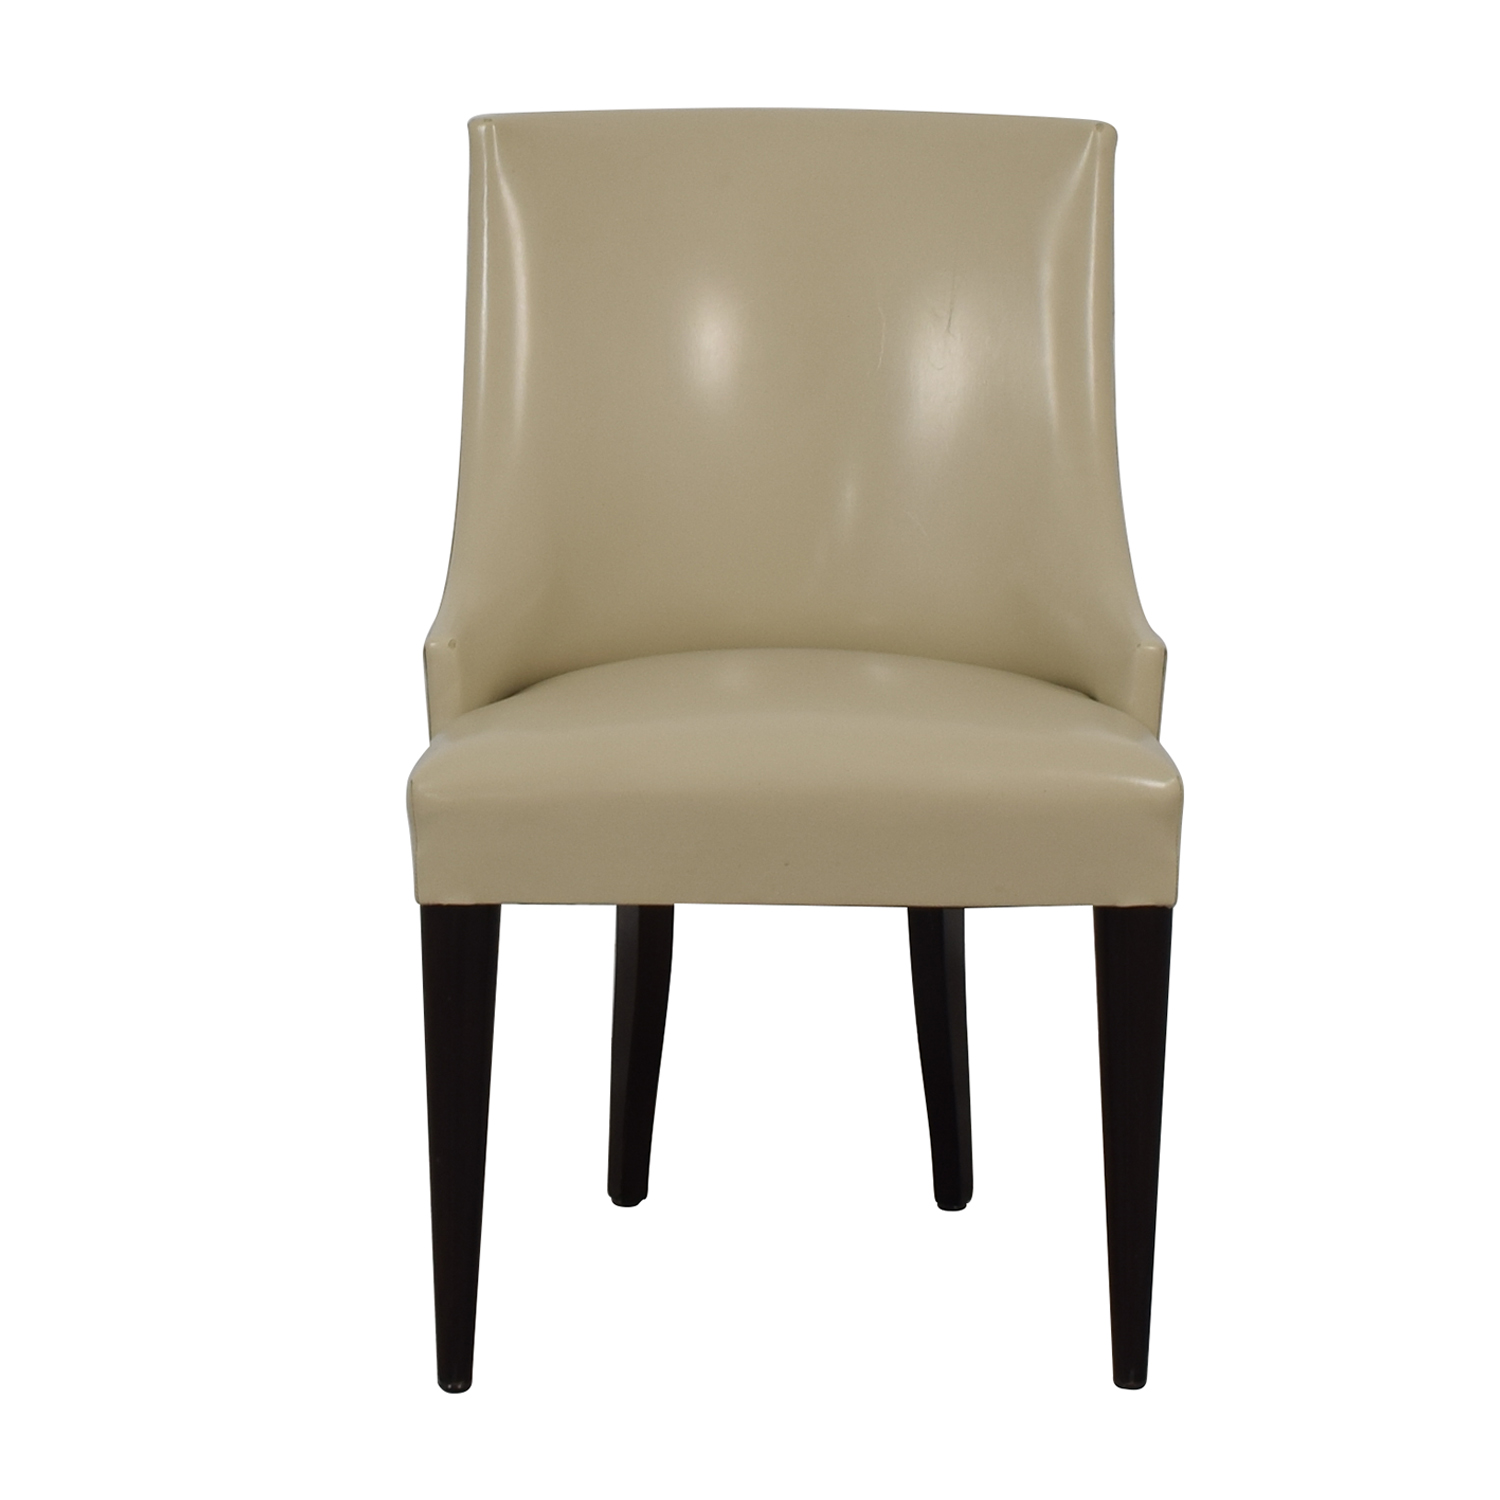 Furniture Masters Furniture Masters White Accent Chair Chairs